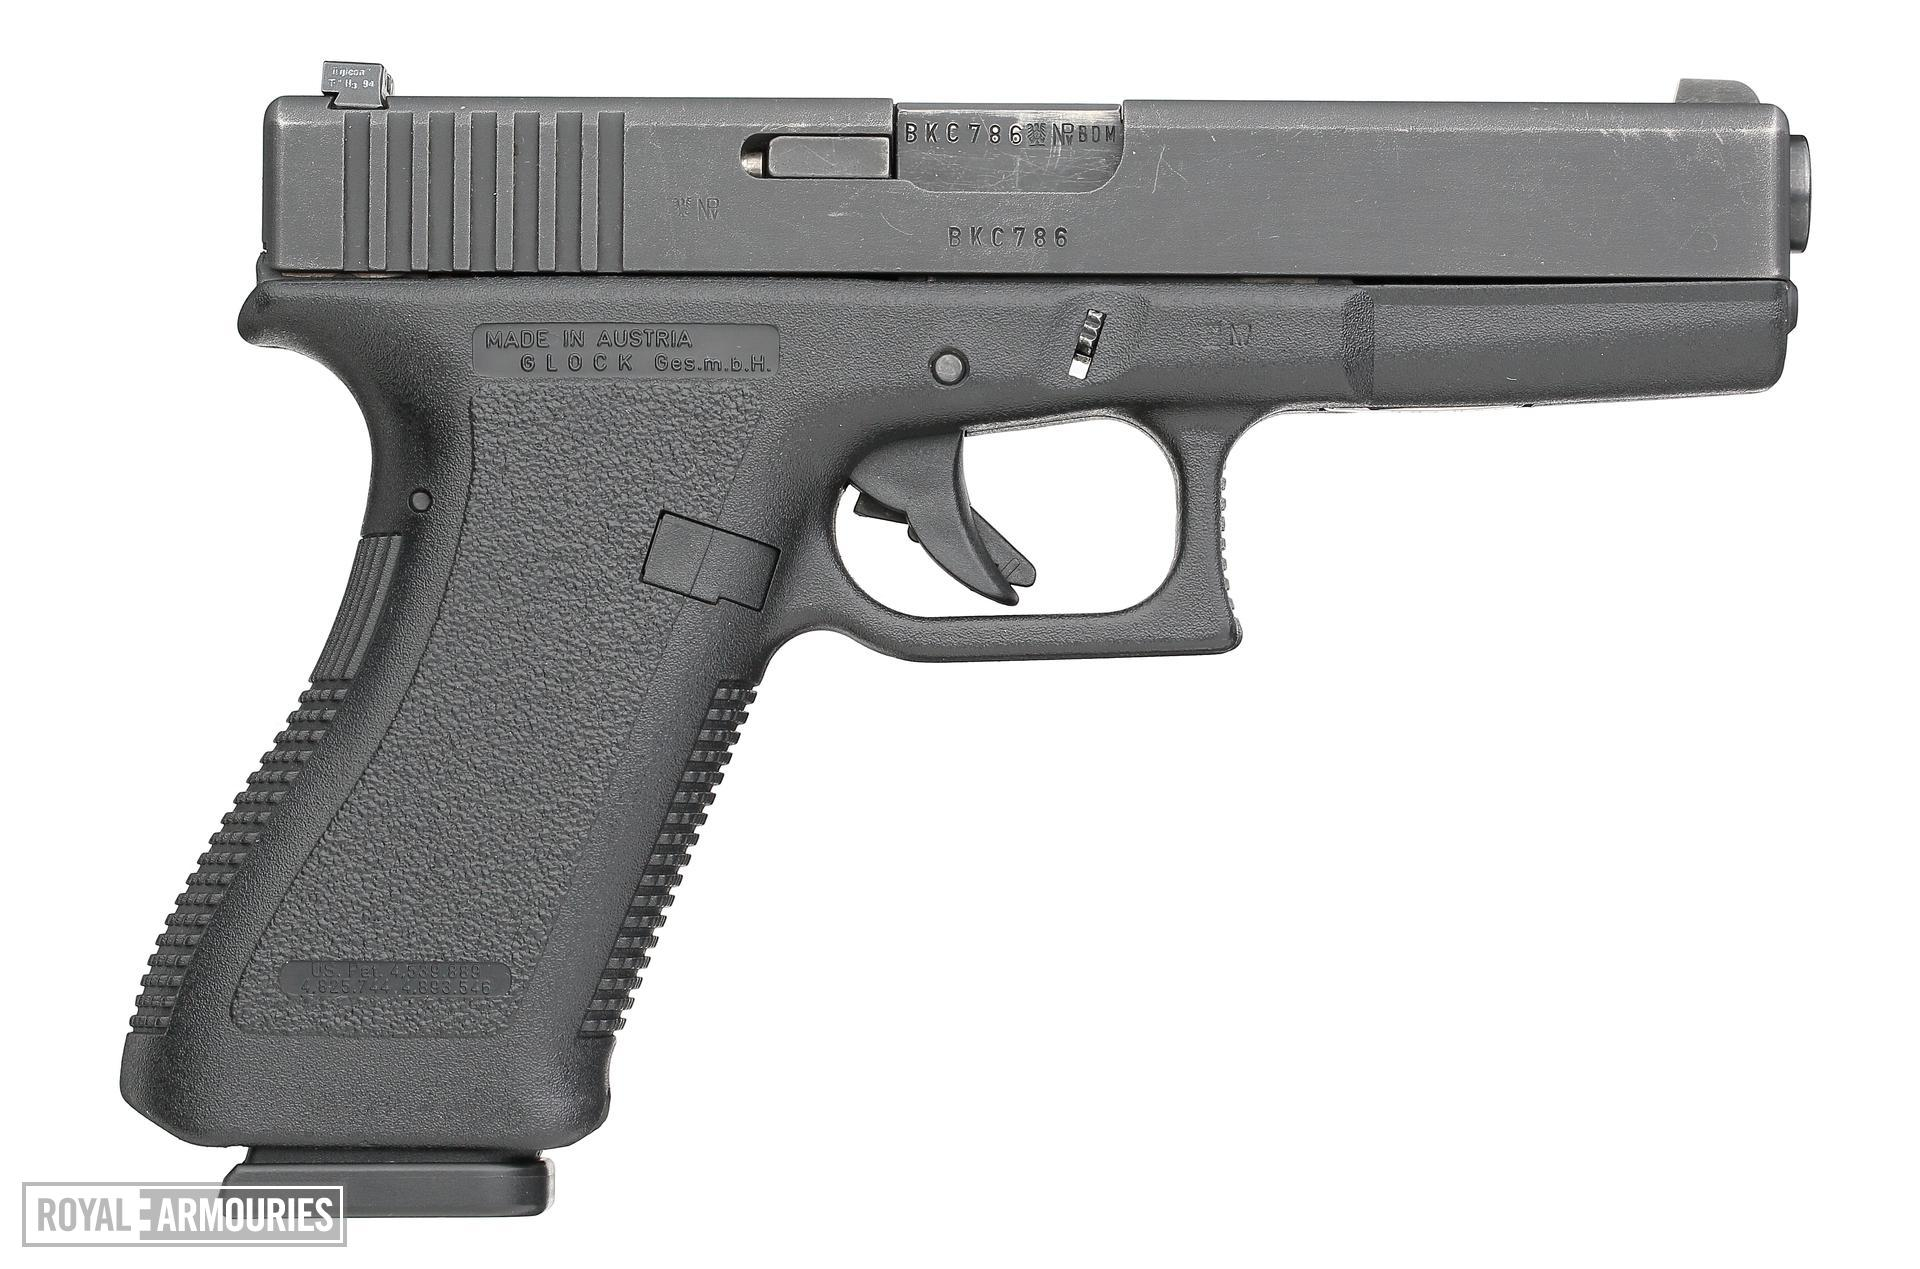 Centrefire self-loading pistol - Glock 17 Generation 2